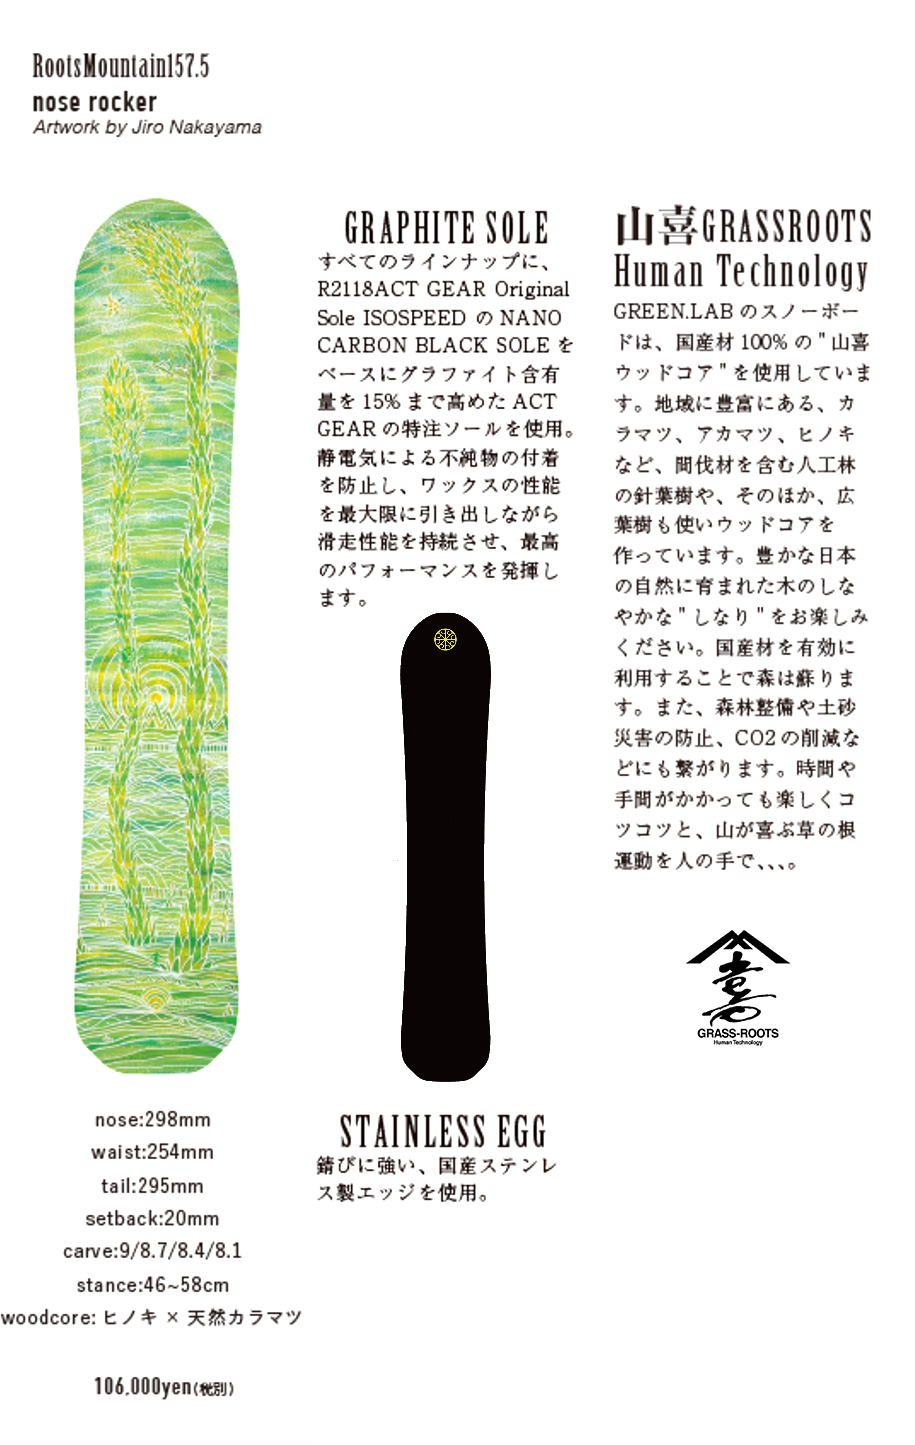 green.lab Roots Mountain 157.5 Nose Rocker